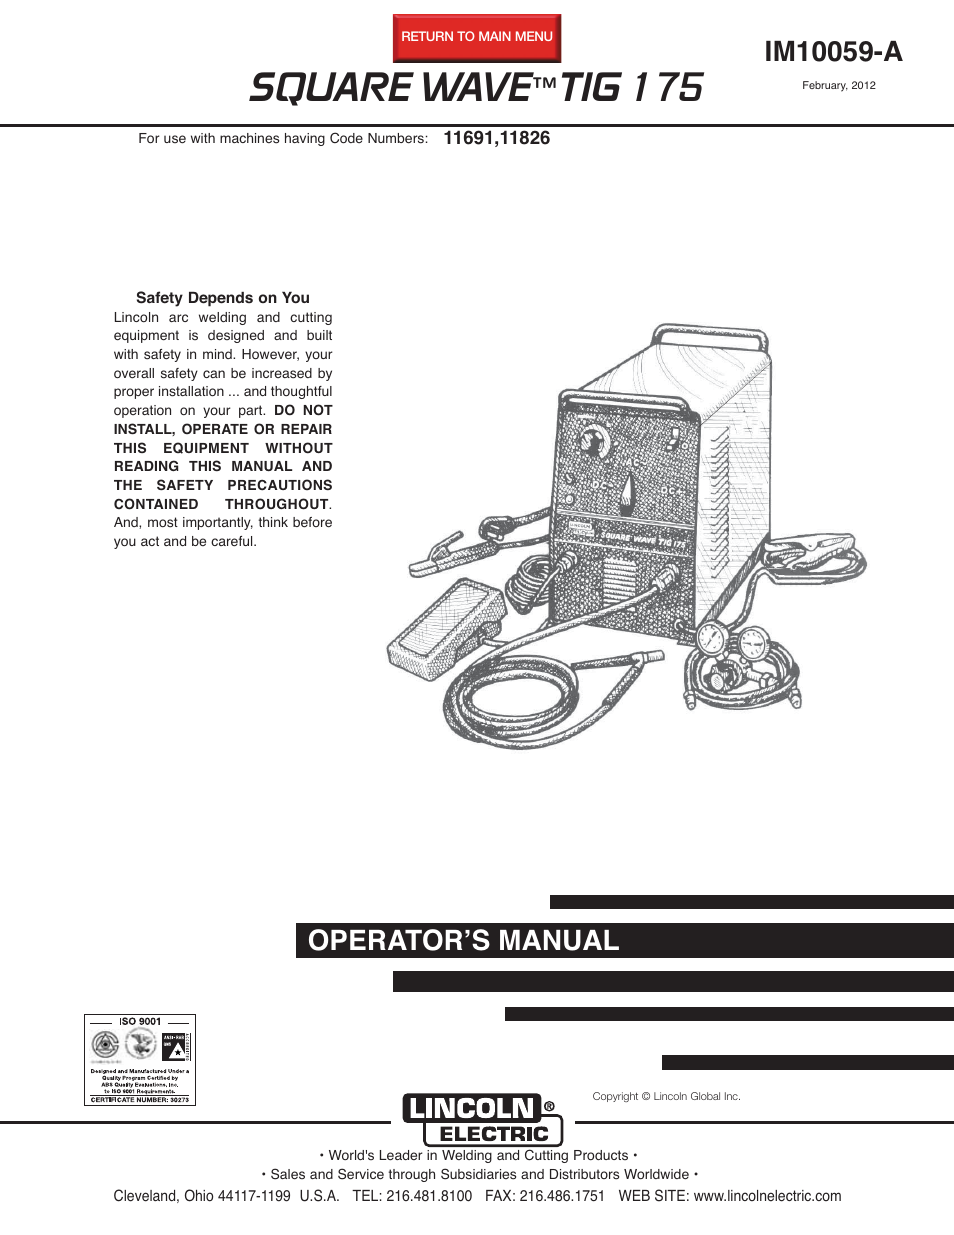 Lincoln Electric Im10059 Square Wave Tig 175 User Manual